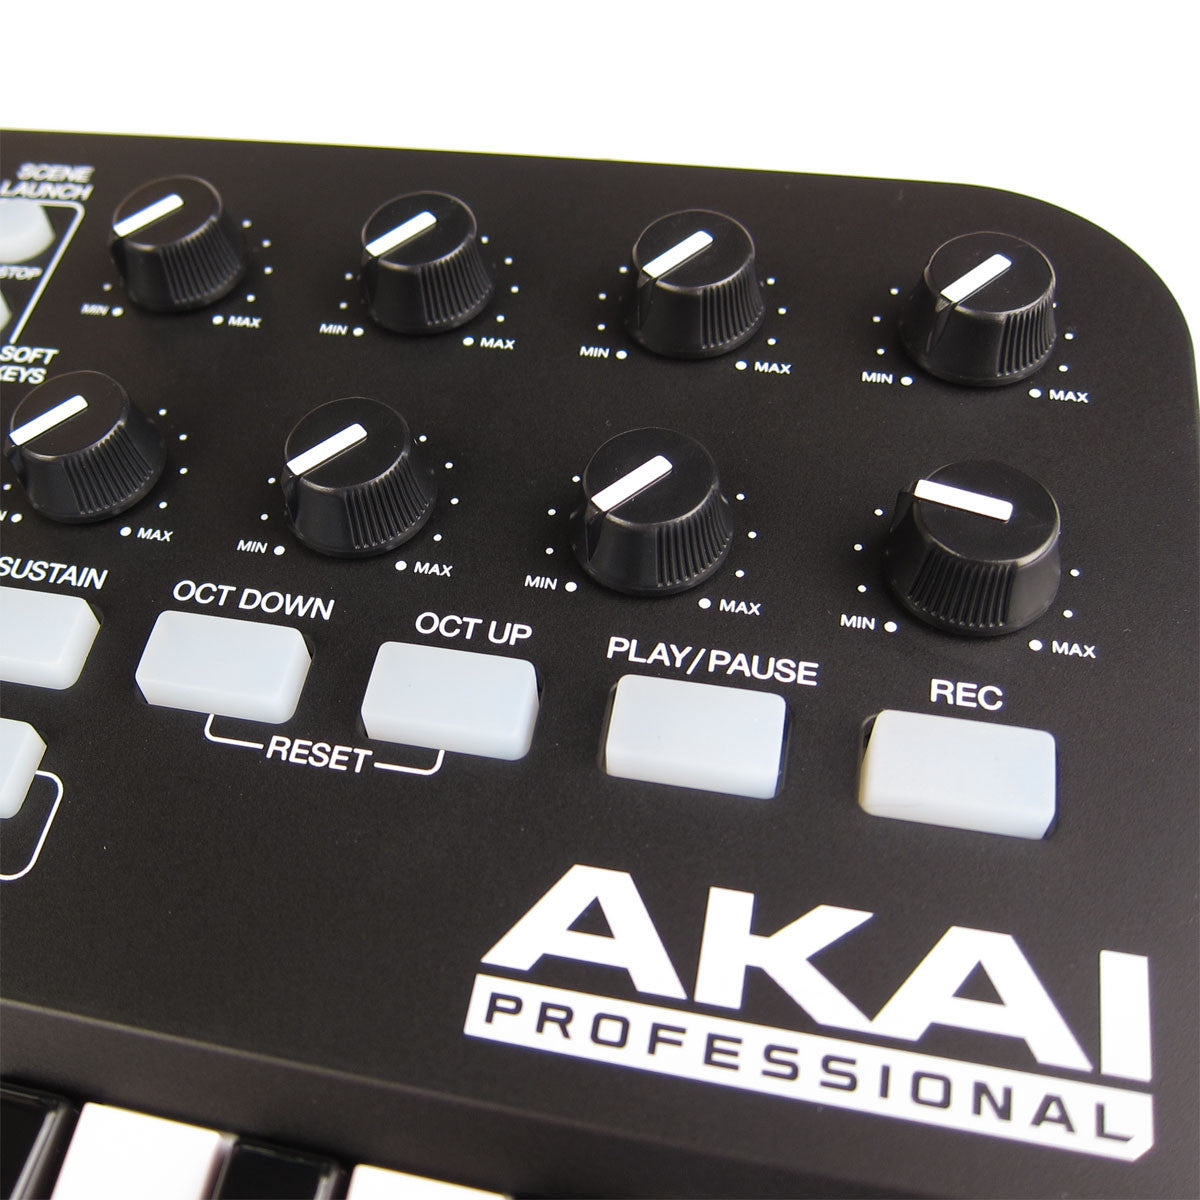 Akai: APC Key 25 Ableton Live Controller with Keyboard knobs